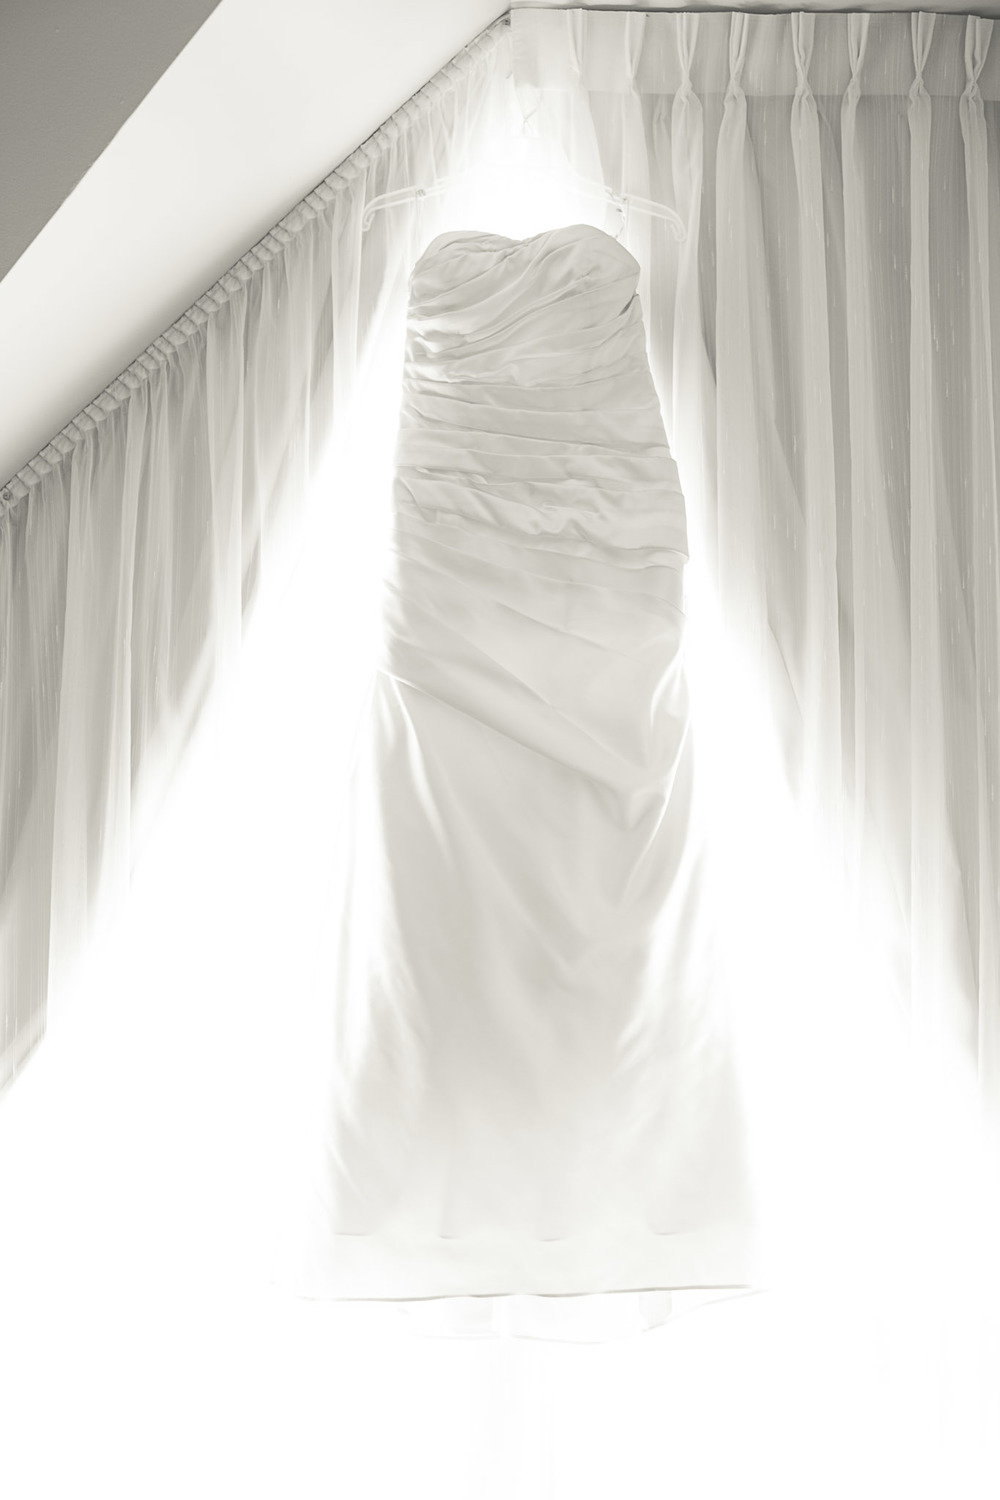 wedding-photographer-toronto-canada-shayne-gray_7834.jpg